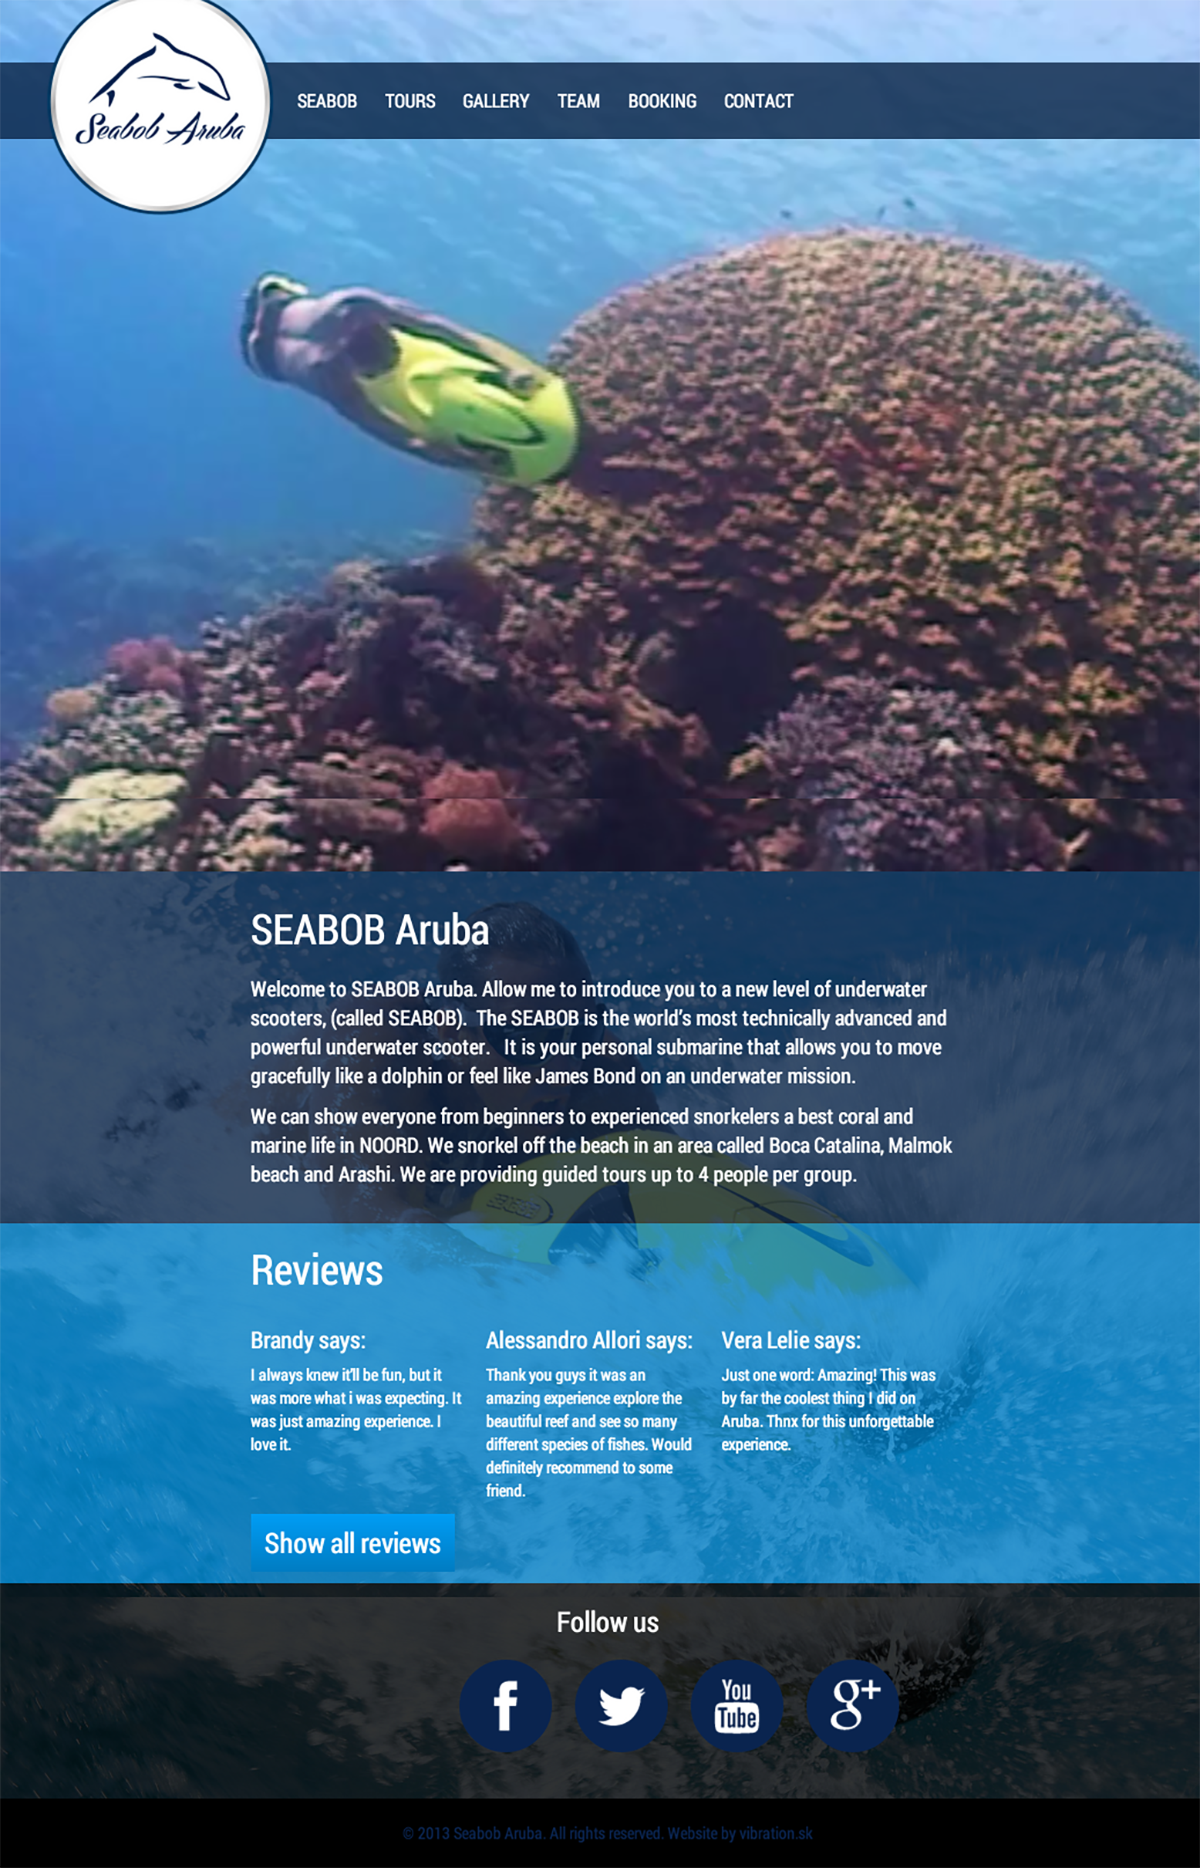 Seabob Aruba tours snorkeling water sportm Aruba activities diving sport